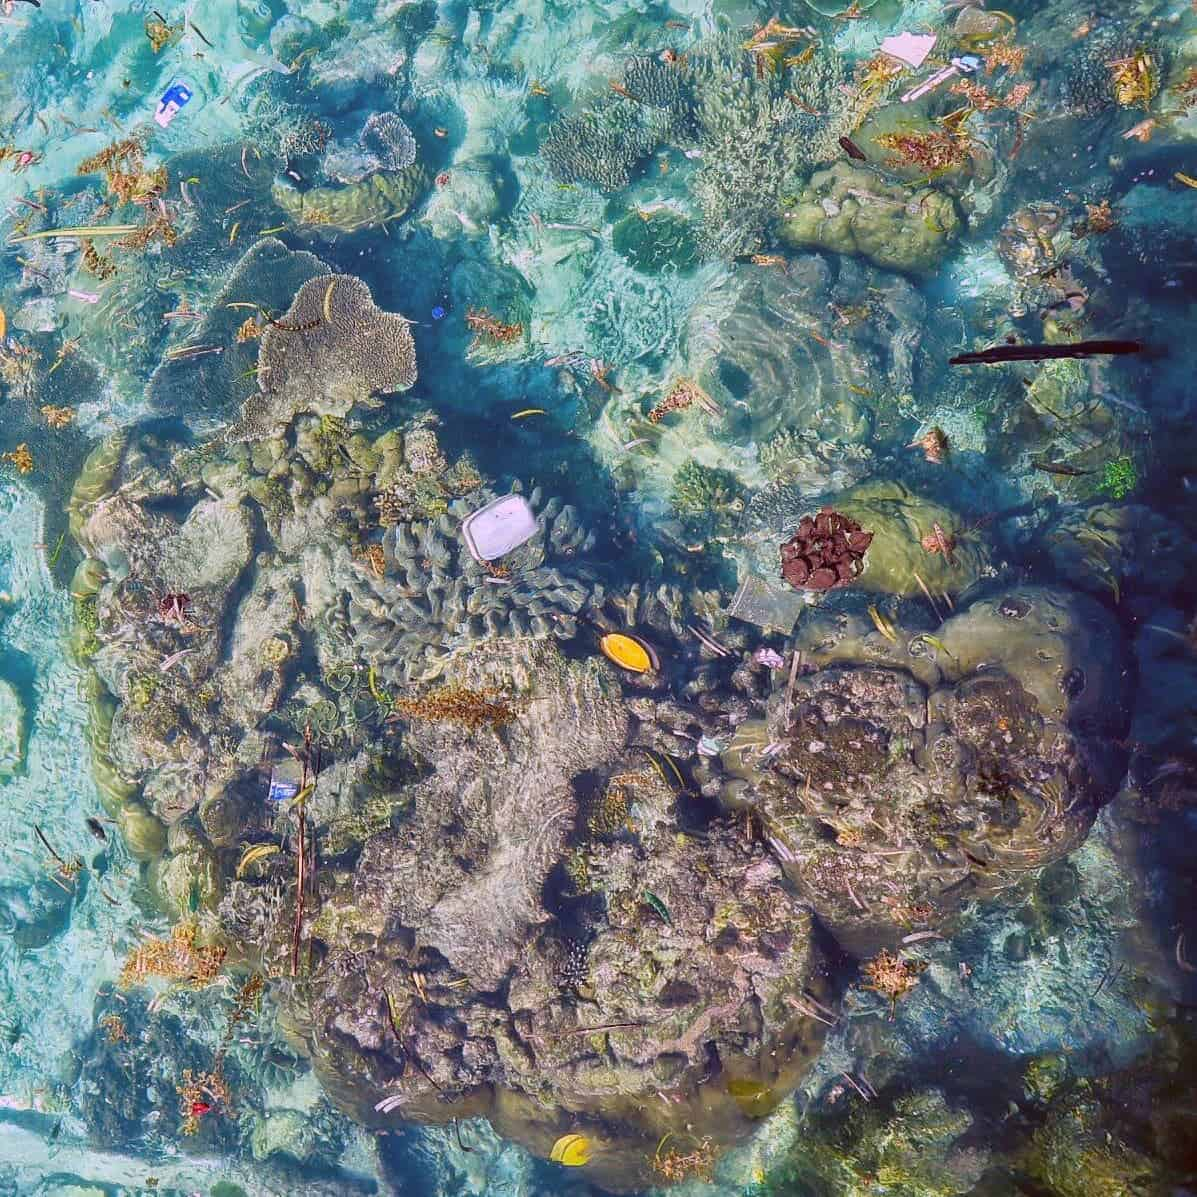 Billions Of Plastic Pieces Are Entangled In The Coral